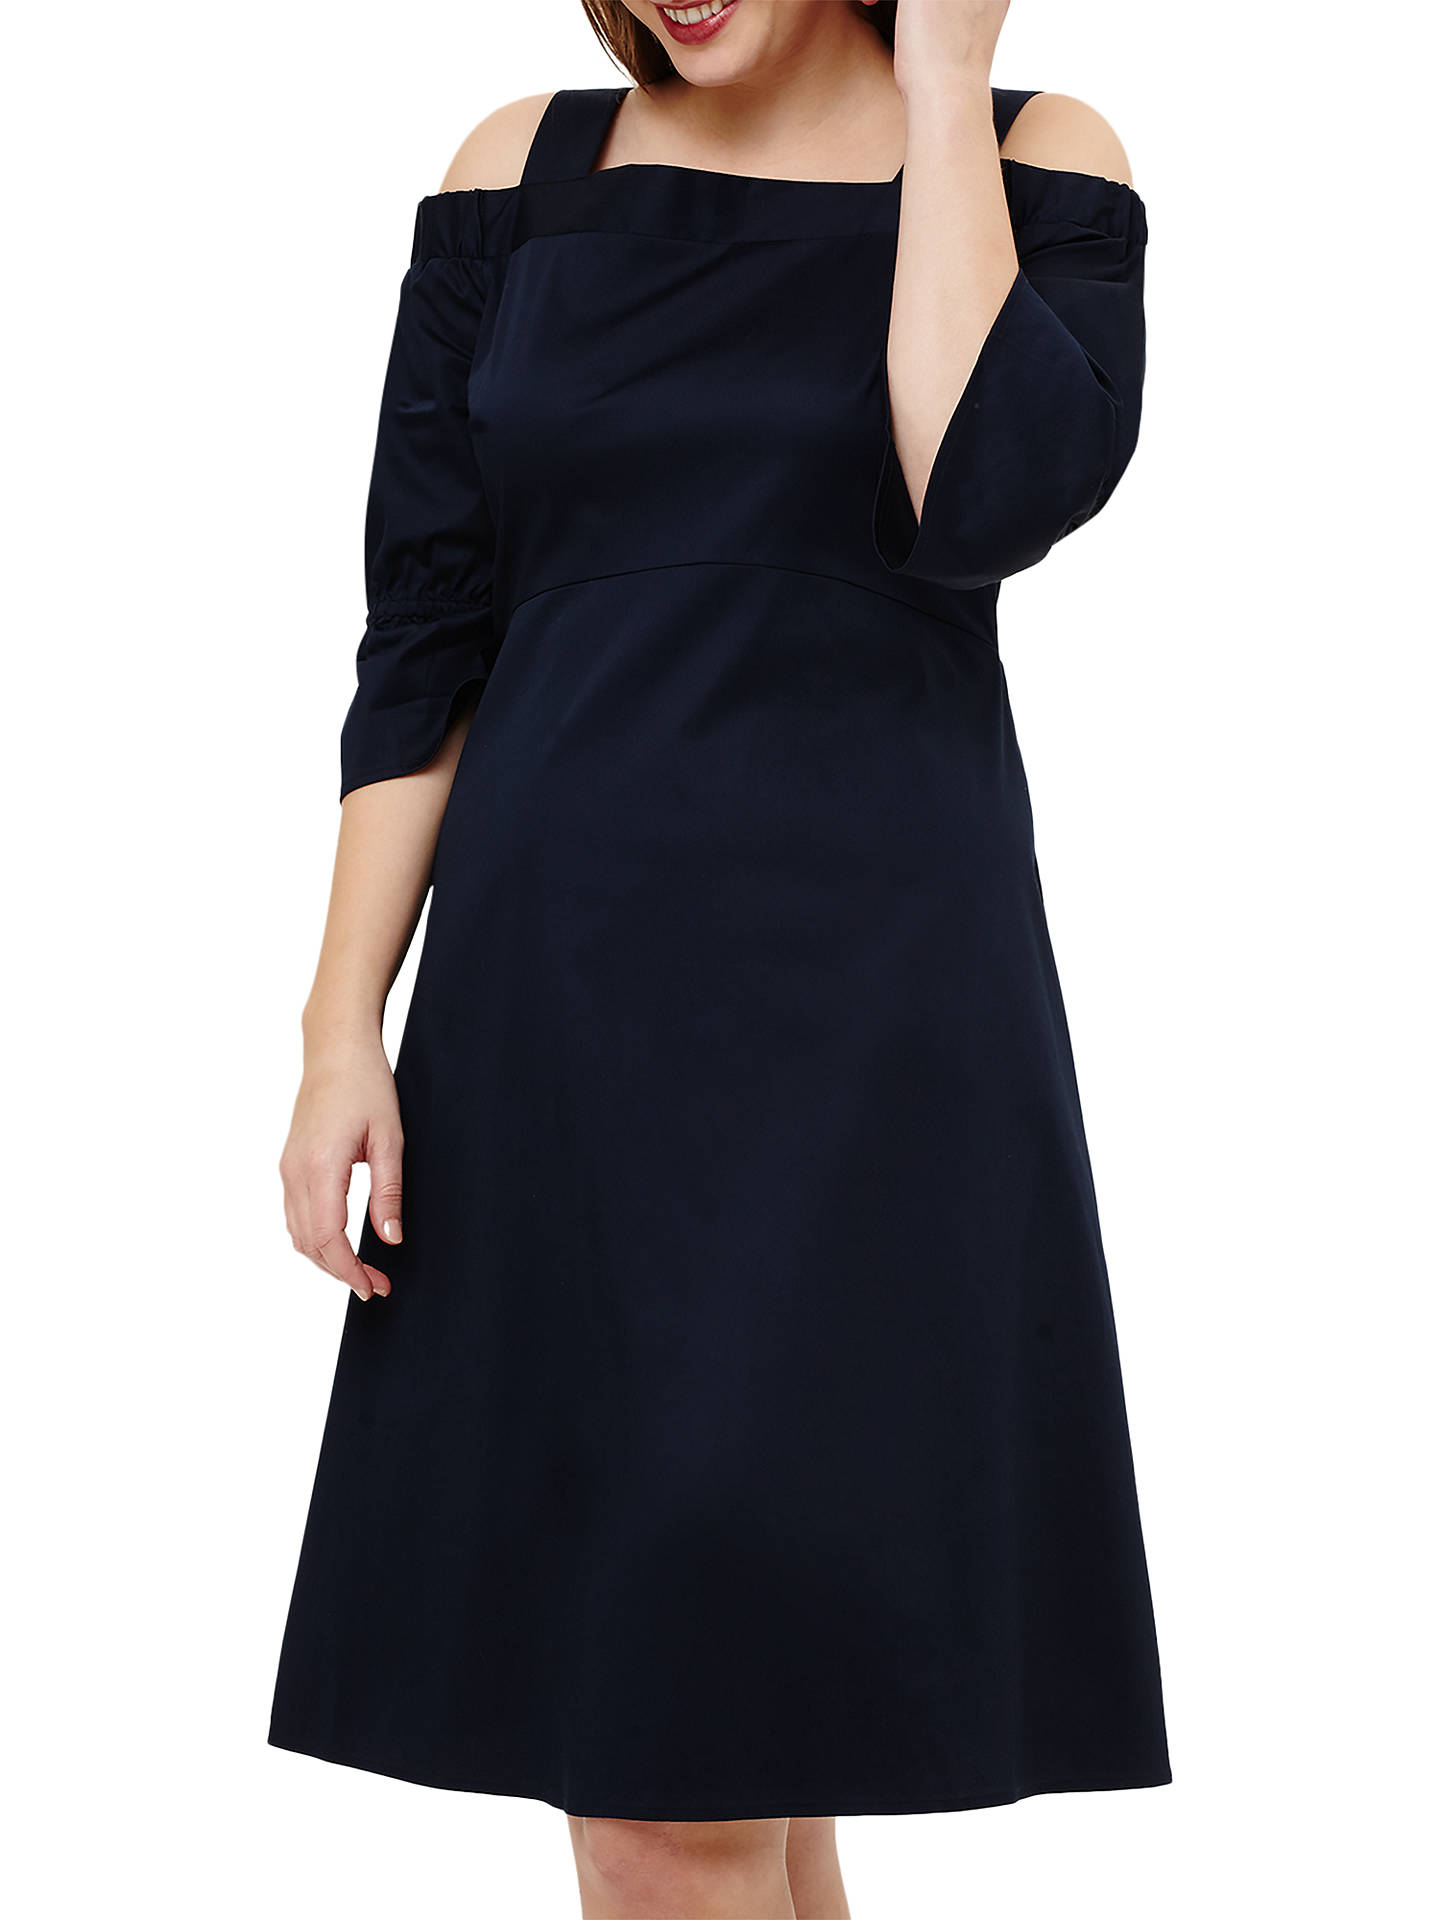 BuyStudio 8 Giana Cold Shoulder Dress, Navy, 12 Online at johnlewis.com